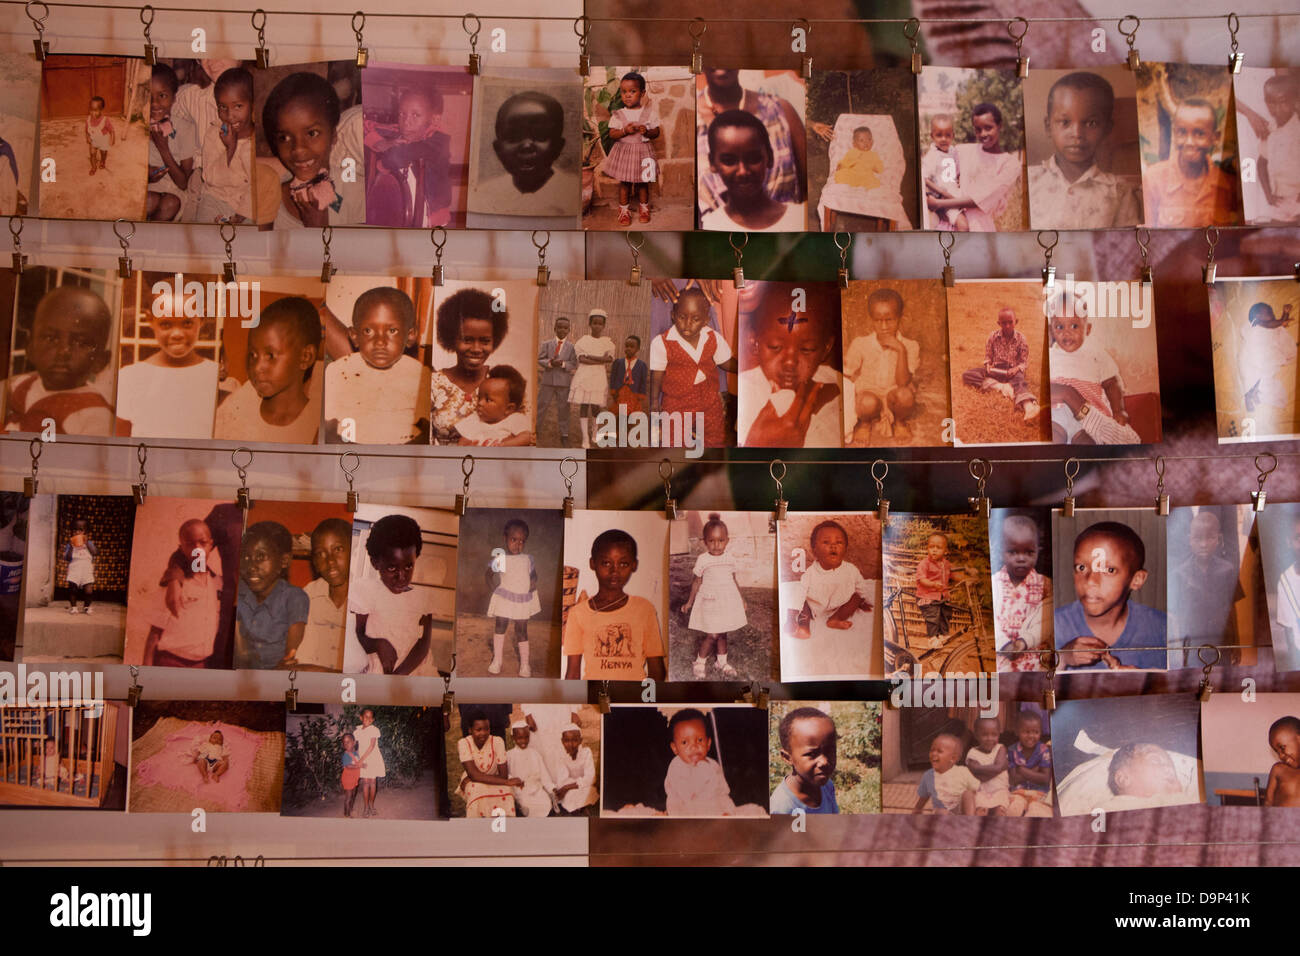 A photo display of some of the victims at the Kigali Memorial Centre for 1994 genocide in Rwanda. - Stock Image